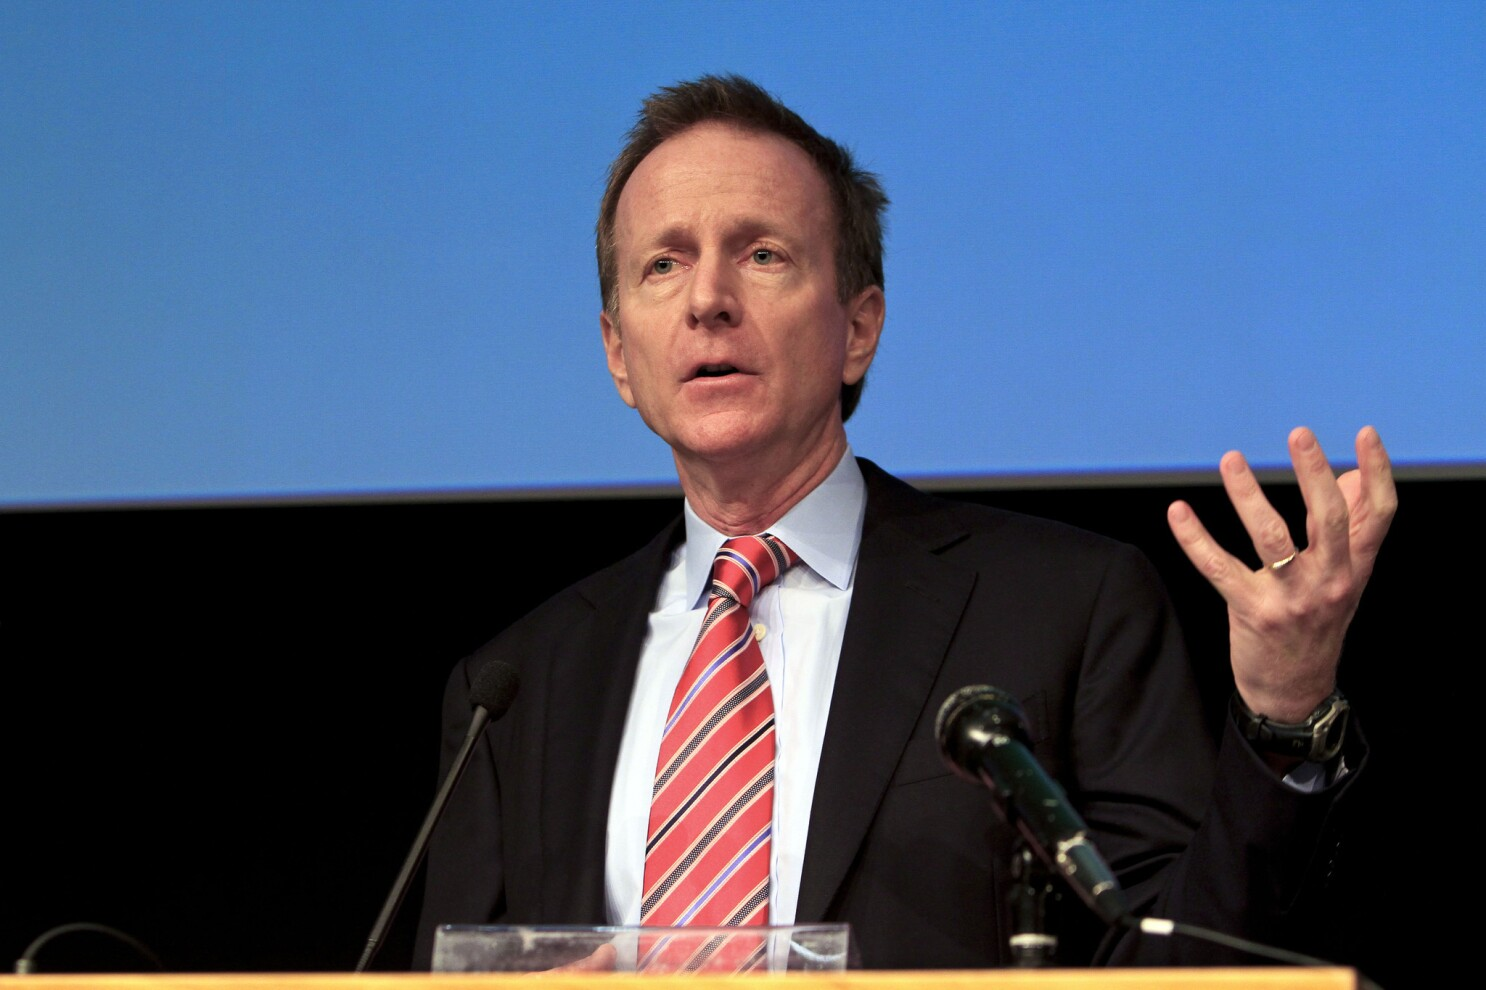 LAUSD superintendent touts small increases in student achievement